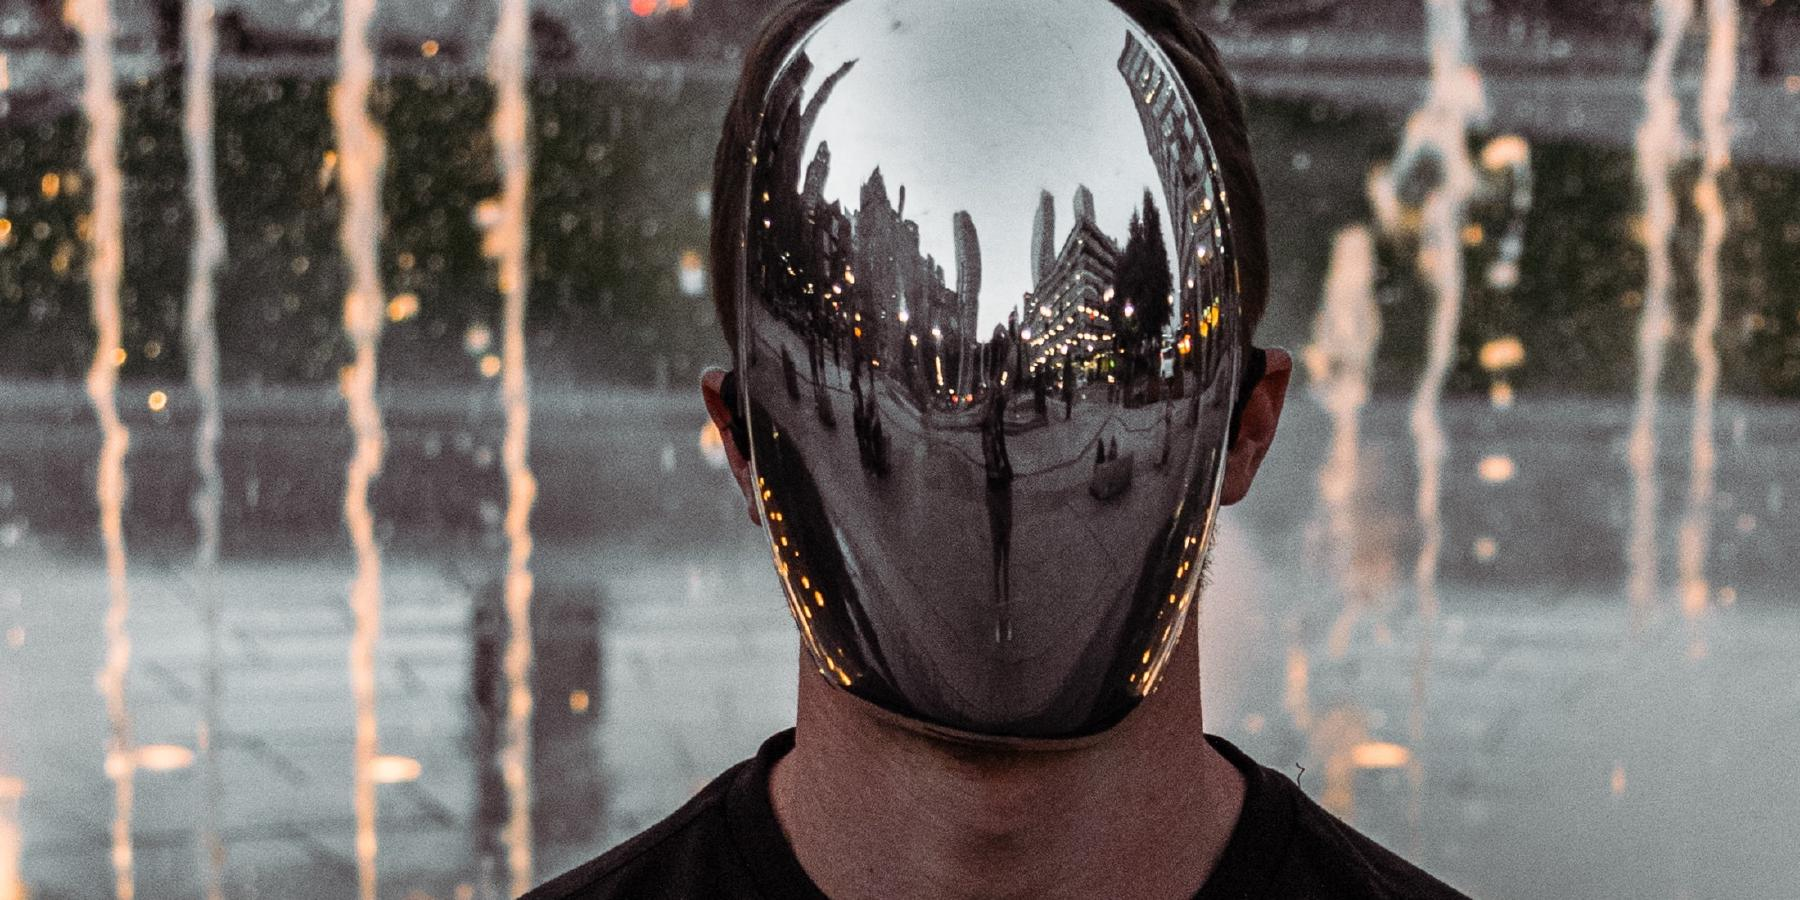 A man wearing a reflective, faceless mask